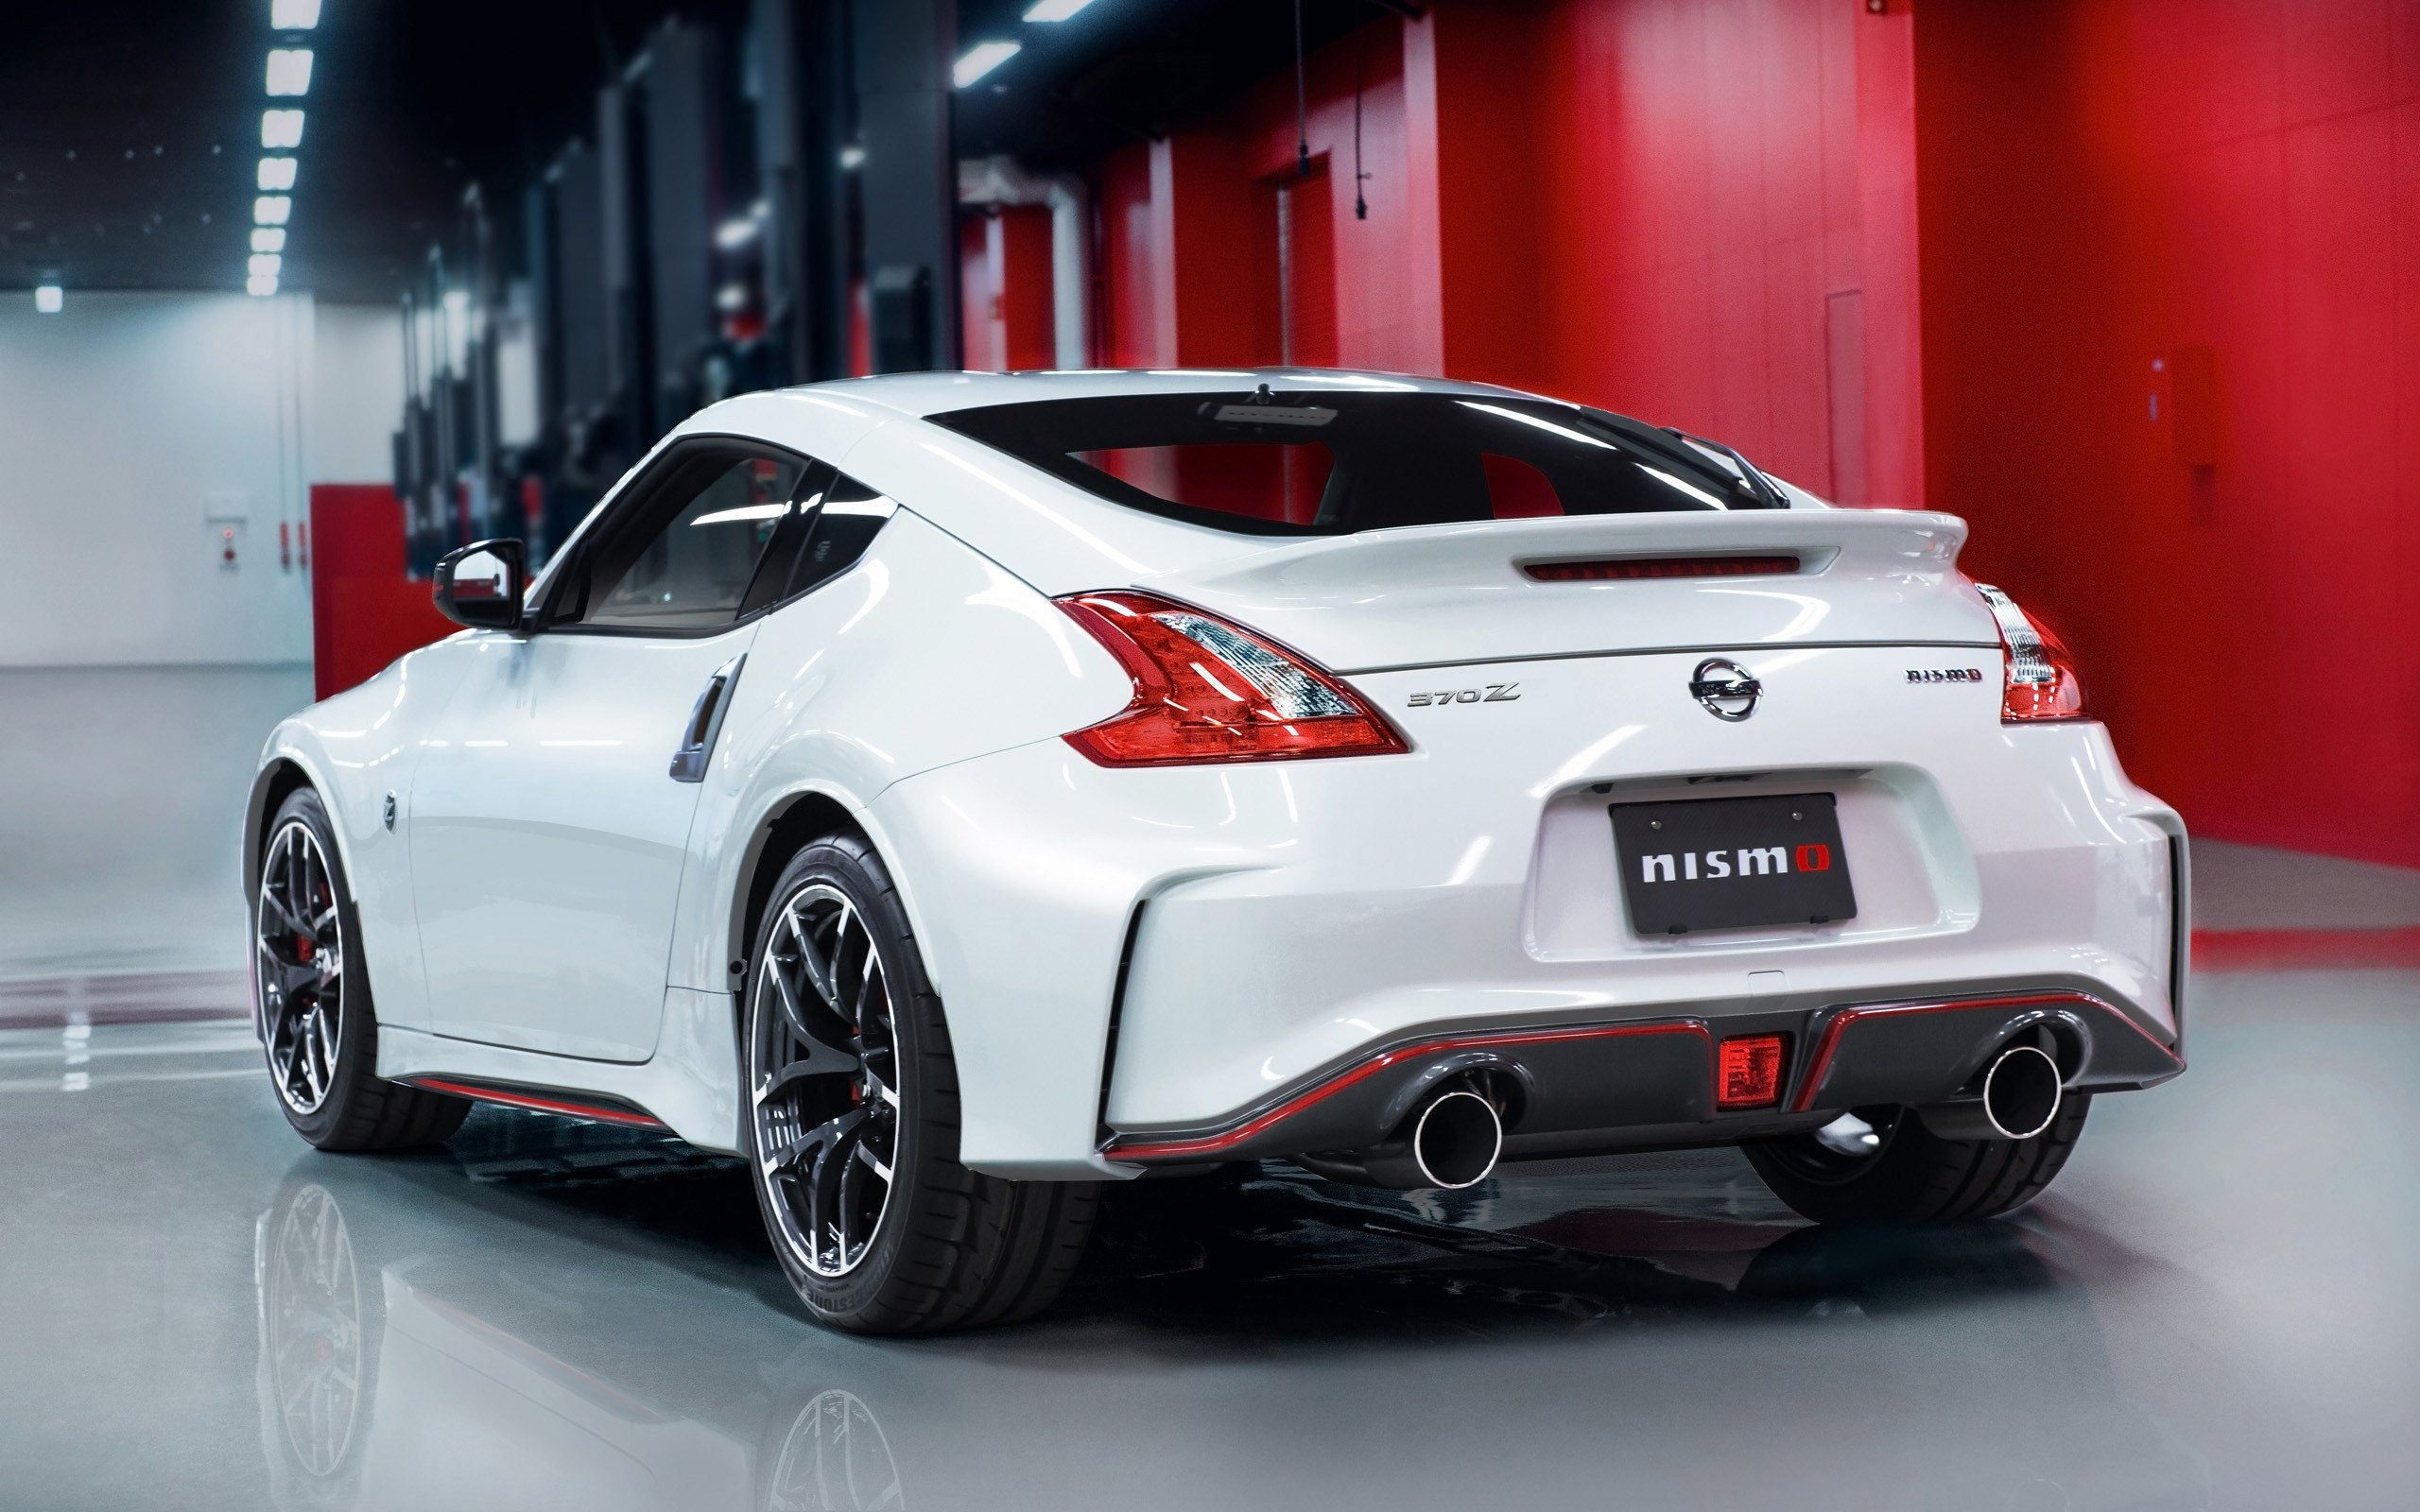 New 2015 Nissan 370Z Nismo 4 Wallpaper Hd Car Wallpapers On This Month